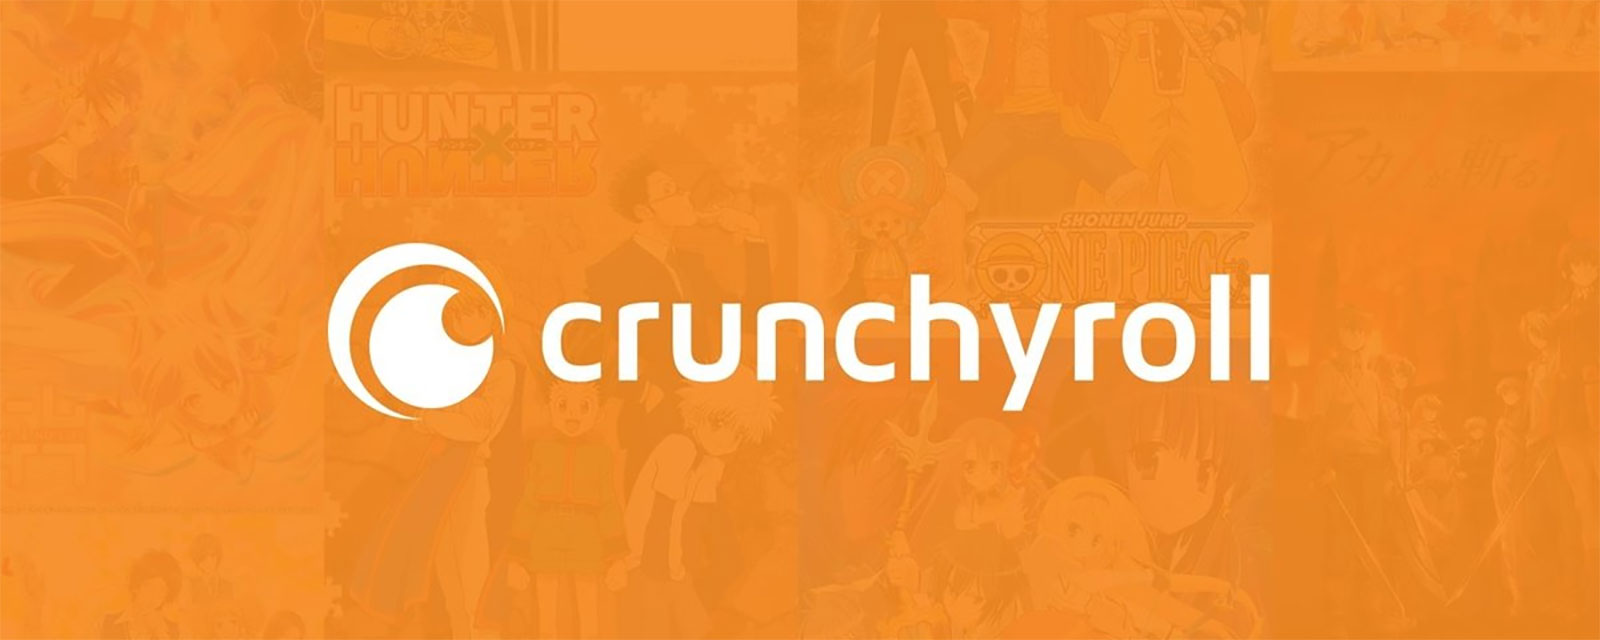 download crunchyroll for android